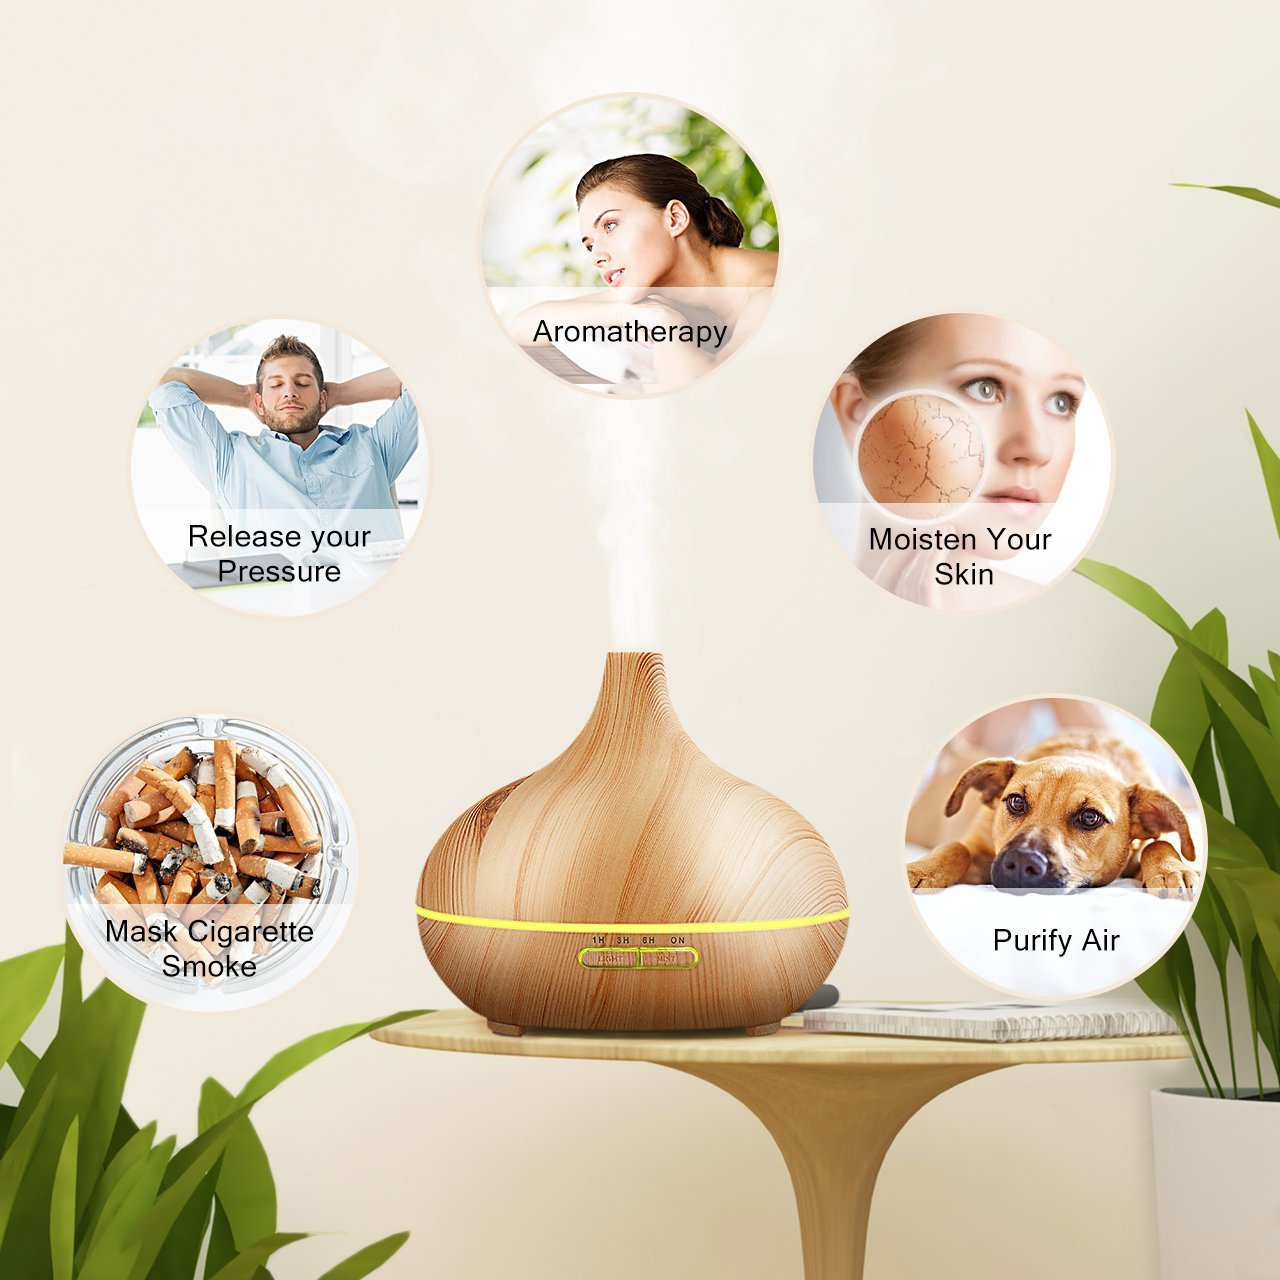 300ml cold fog humidifier ultrasonic aromatherapy essential oil disperser, wood grain 6 timing7 color LED automatic induction, no water closed function, office, home, living room, study, yoga, spa by Top-Fans (Image #5)